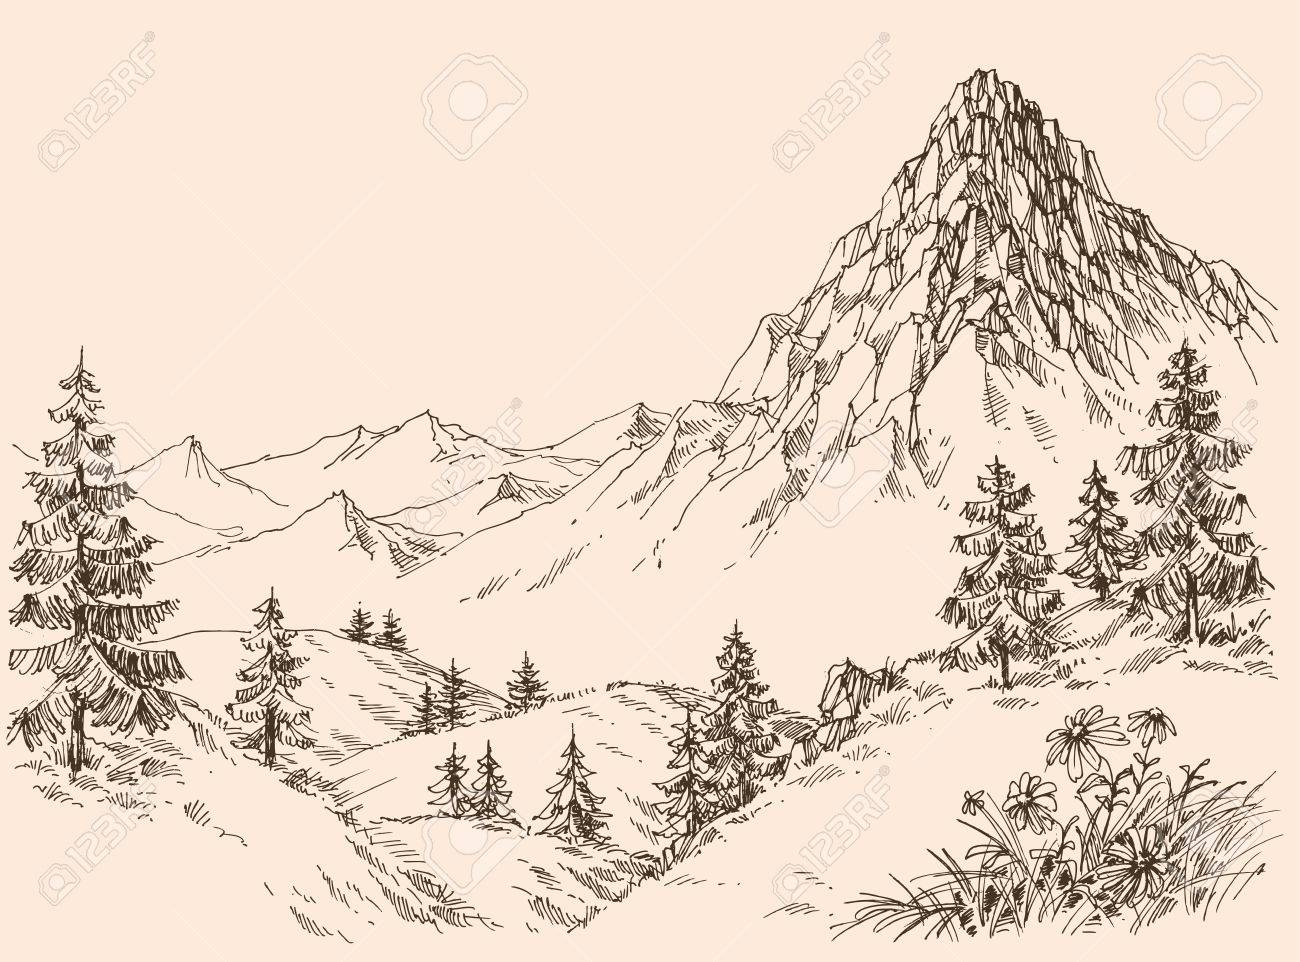 Nature in the mountains vector - 58689938